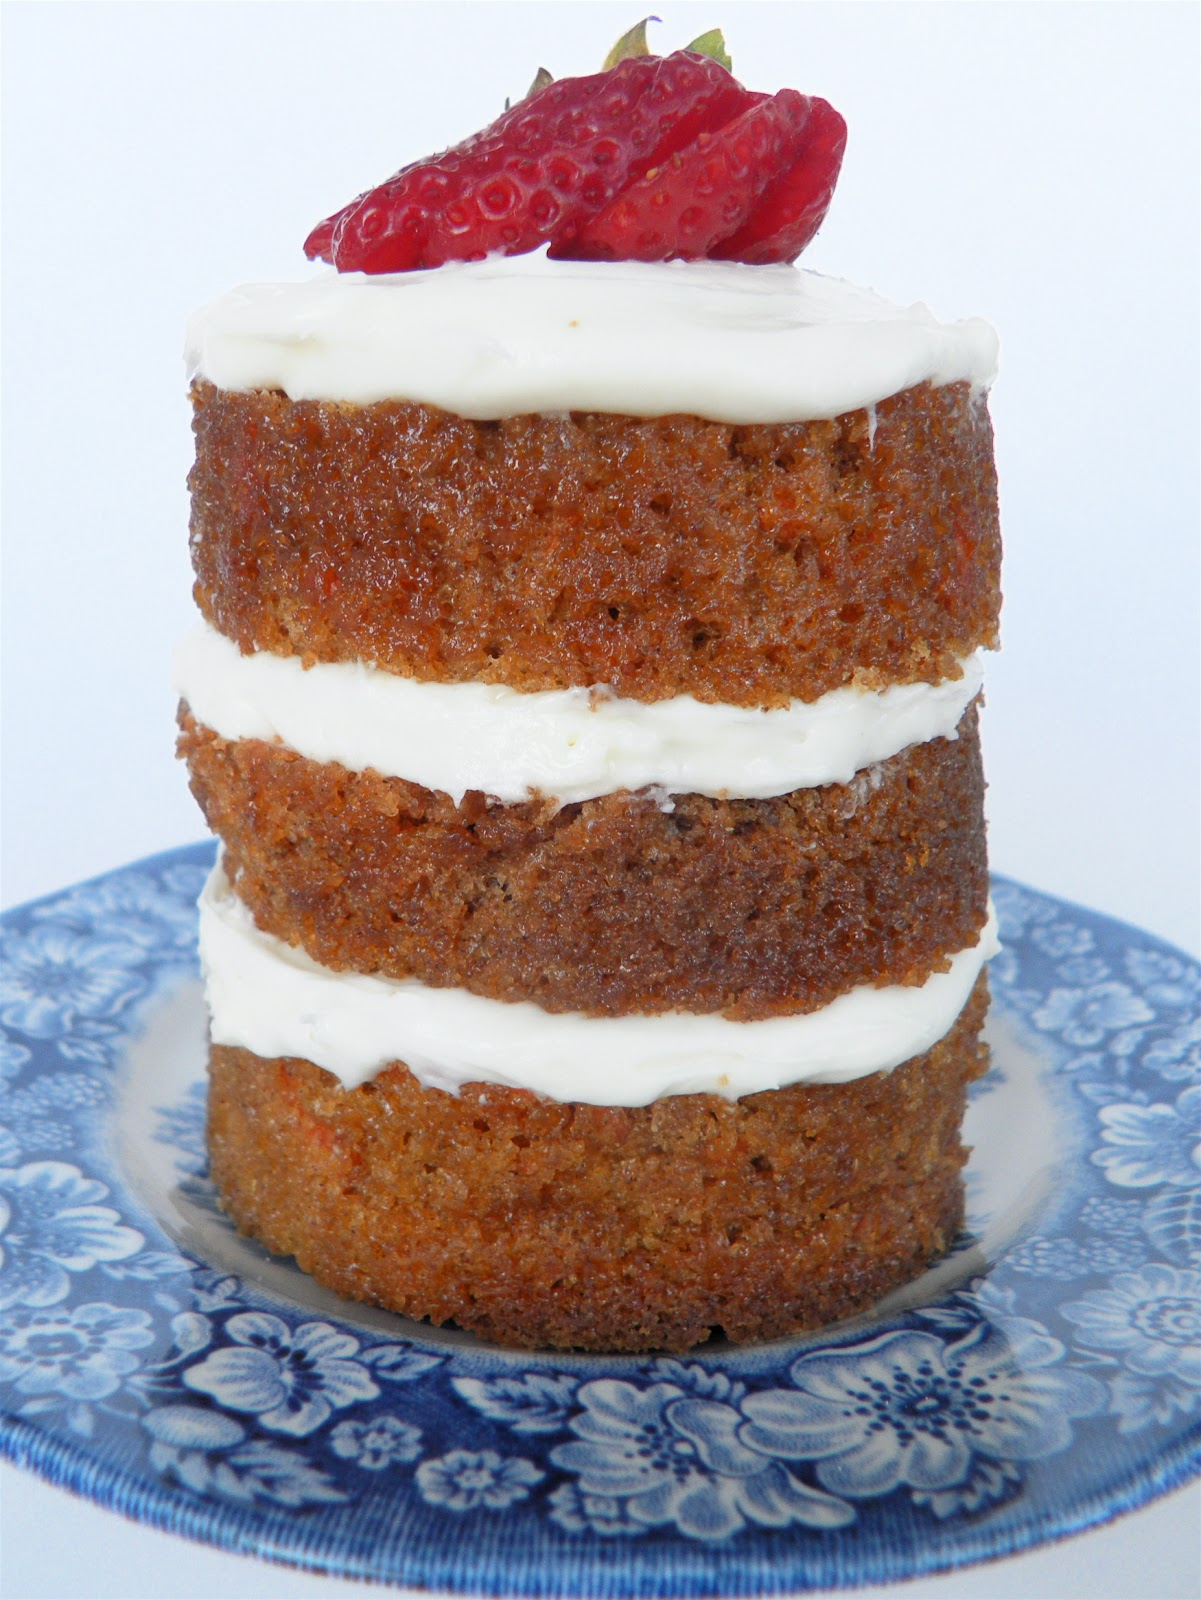 What To Use In Between Layers Of Torte Cake